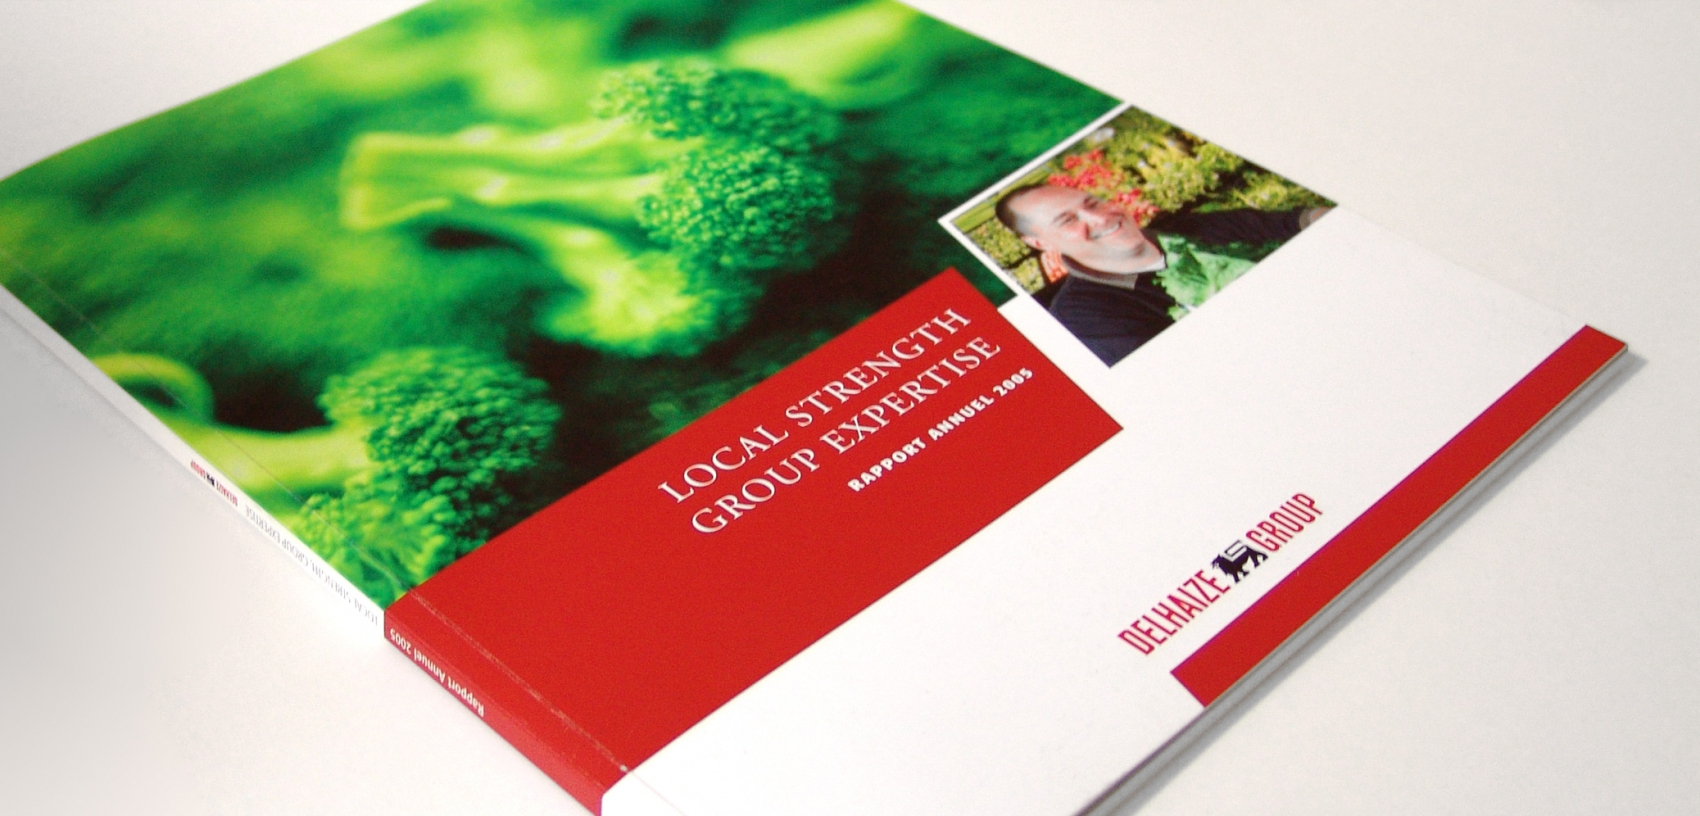 Delhaize Group - Annual Report 2005